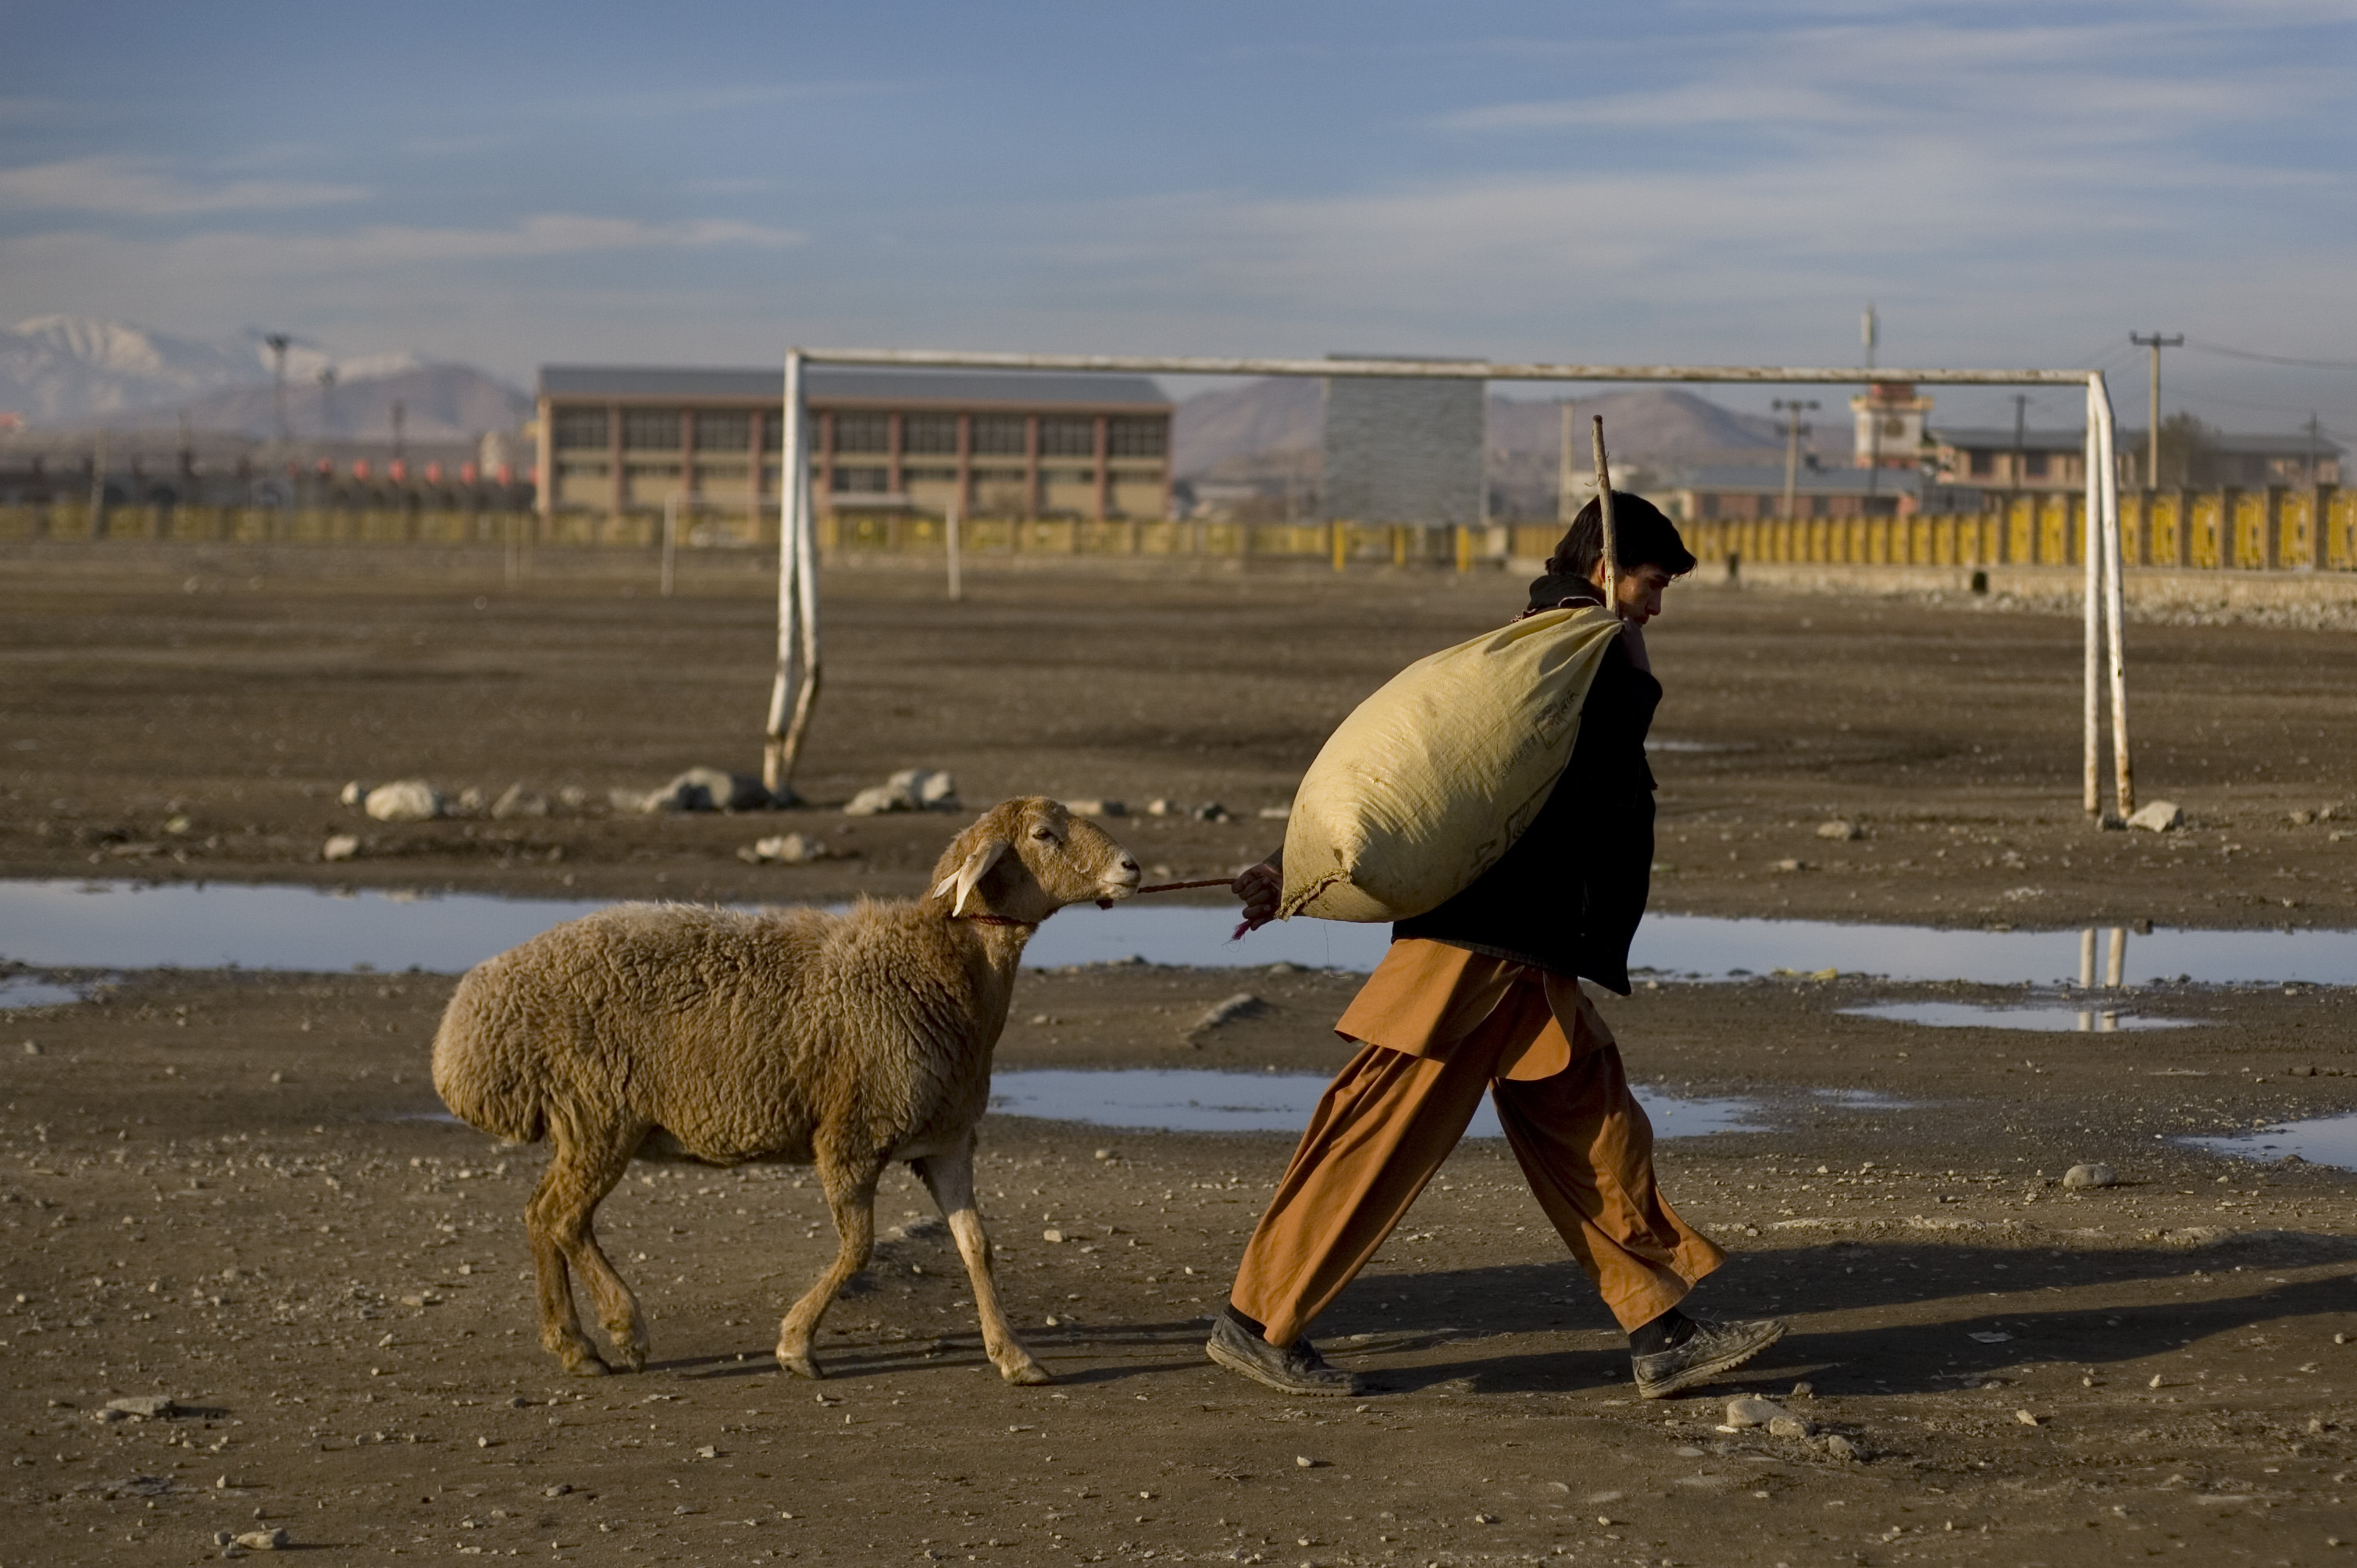 An Afghan man drags a sheep home after buying it at a market ahead of the Eid festival in 2009.